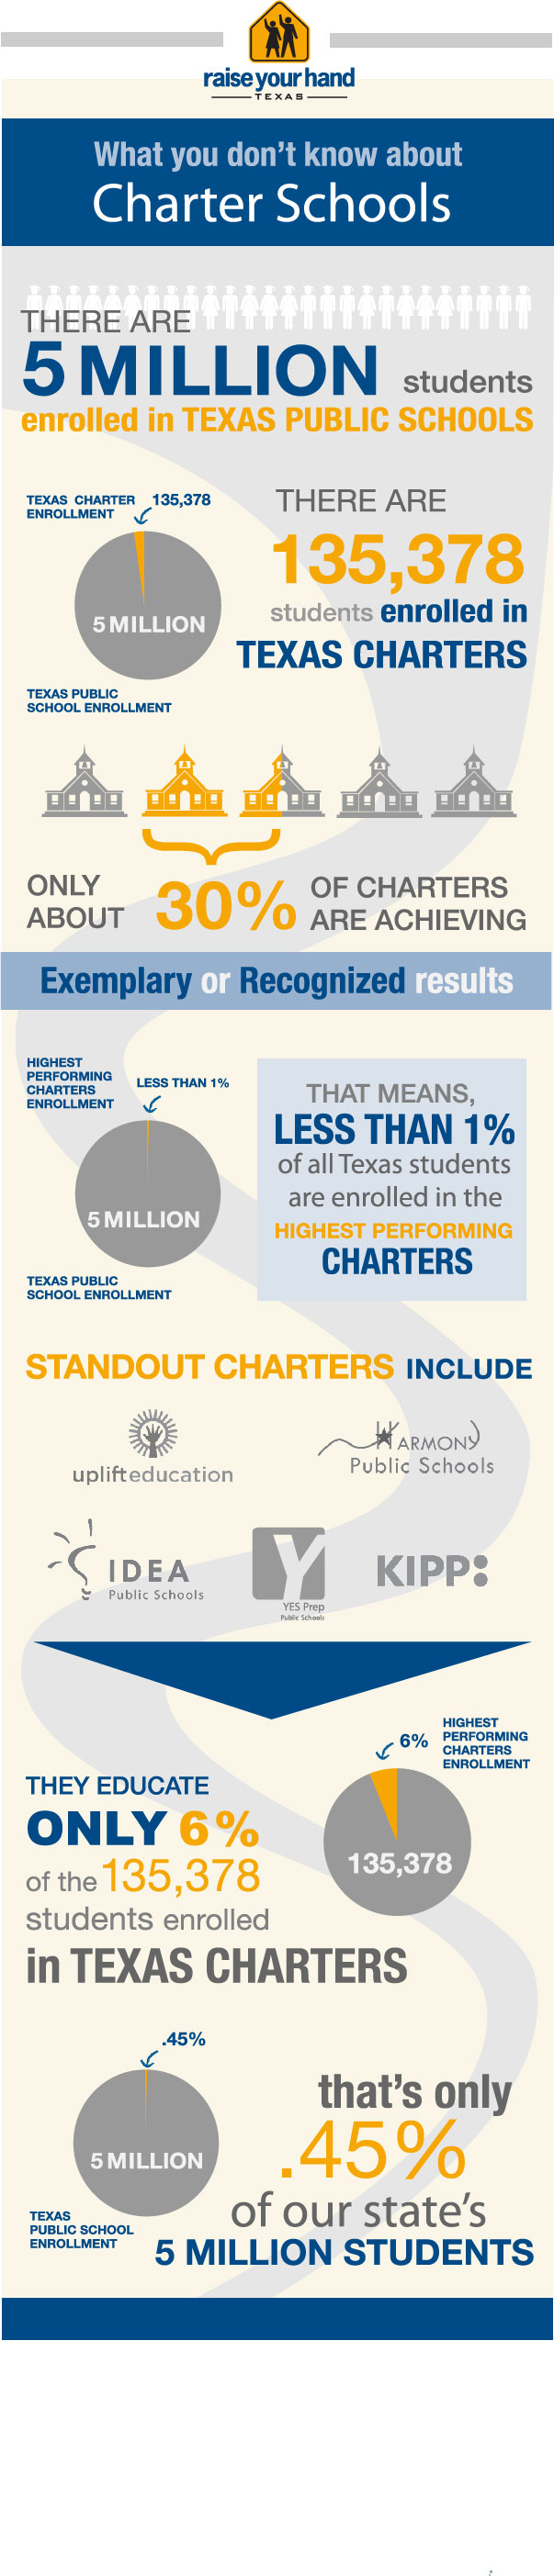 by-the-numbers-a-look-at-what-you-dont-know-about-charter-schools_504e228115cf0